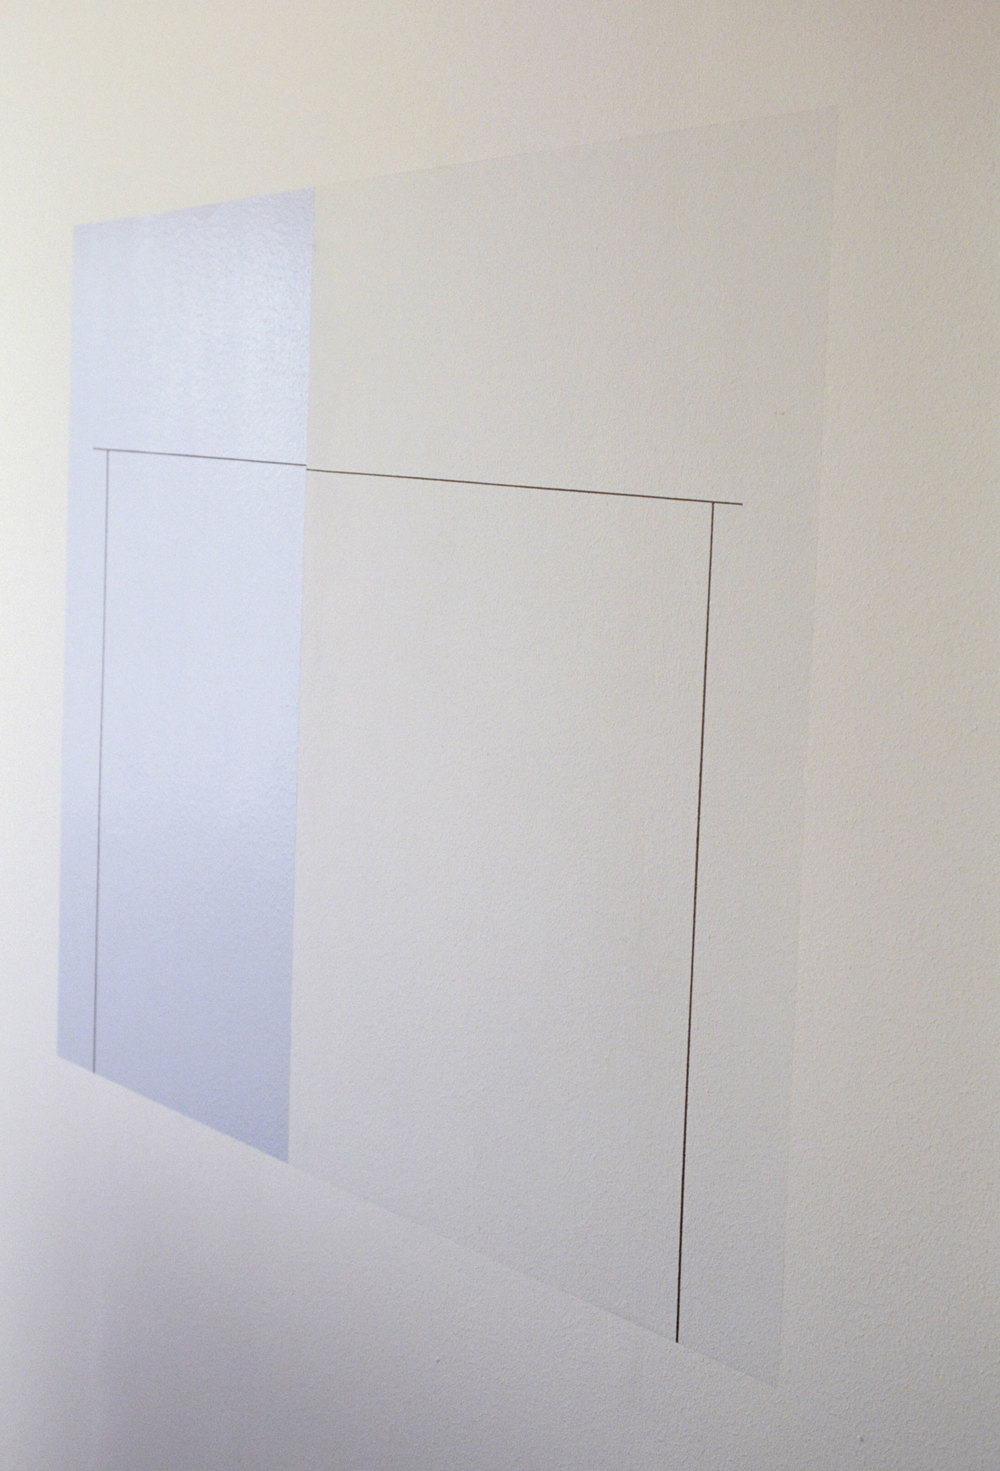 Kate Shepherd, Installation view, wall painting, Chinati Foundation, 1999.jpg